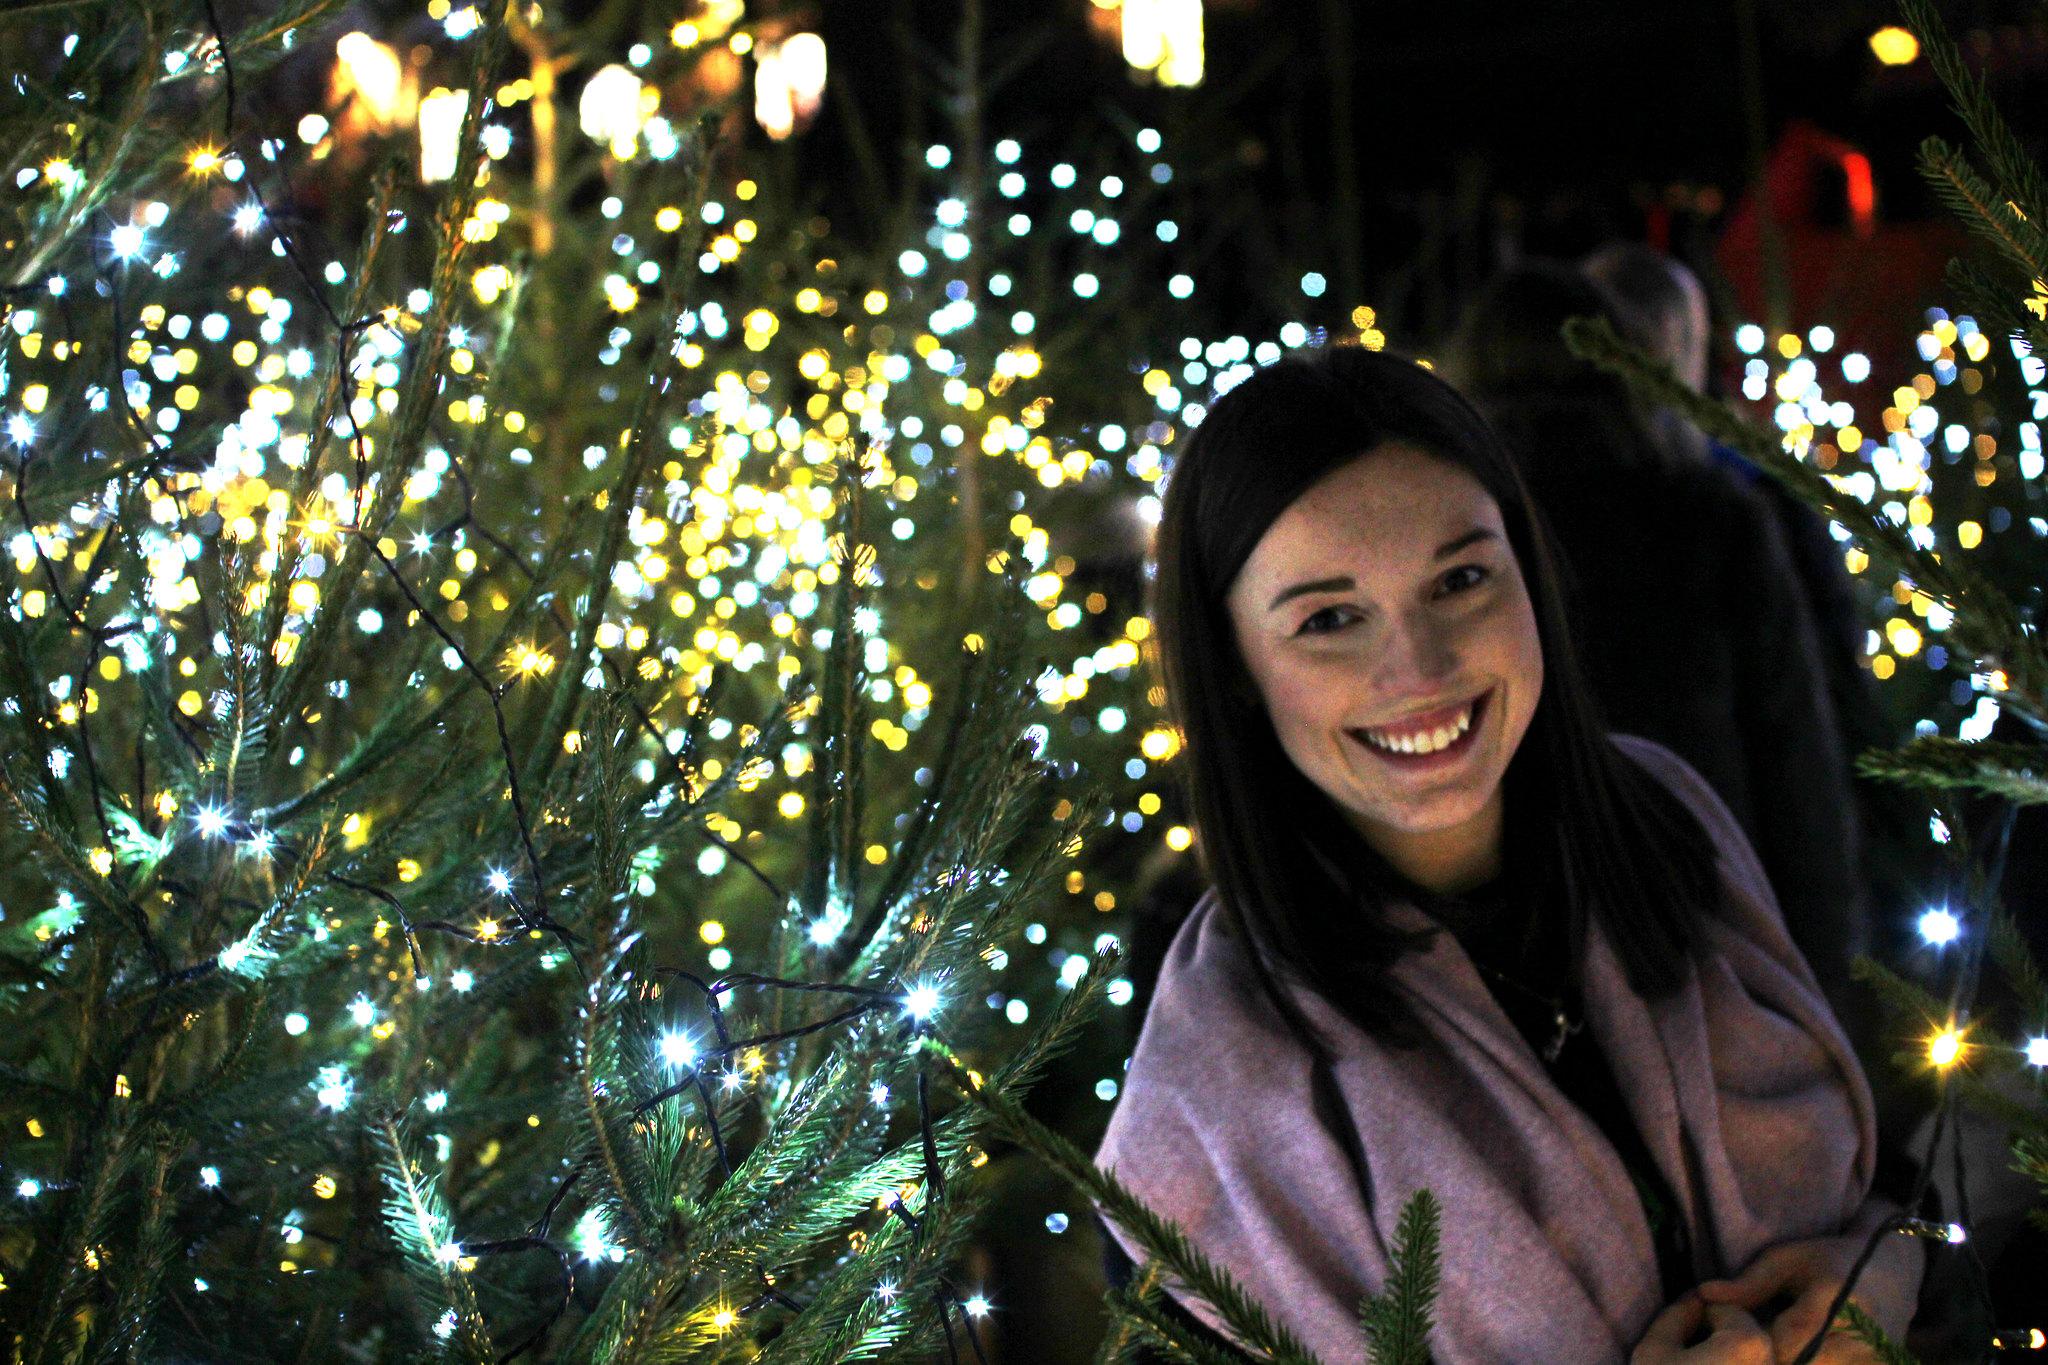 Edinburgh Christmas Markets 2016 lifestyle blogger UK The Little Things